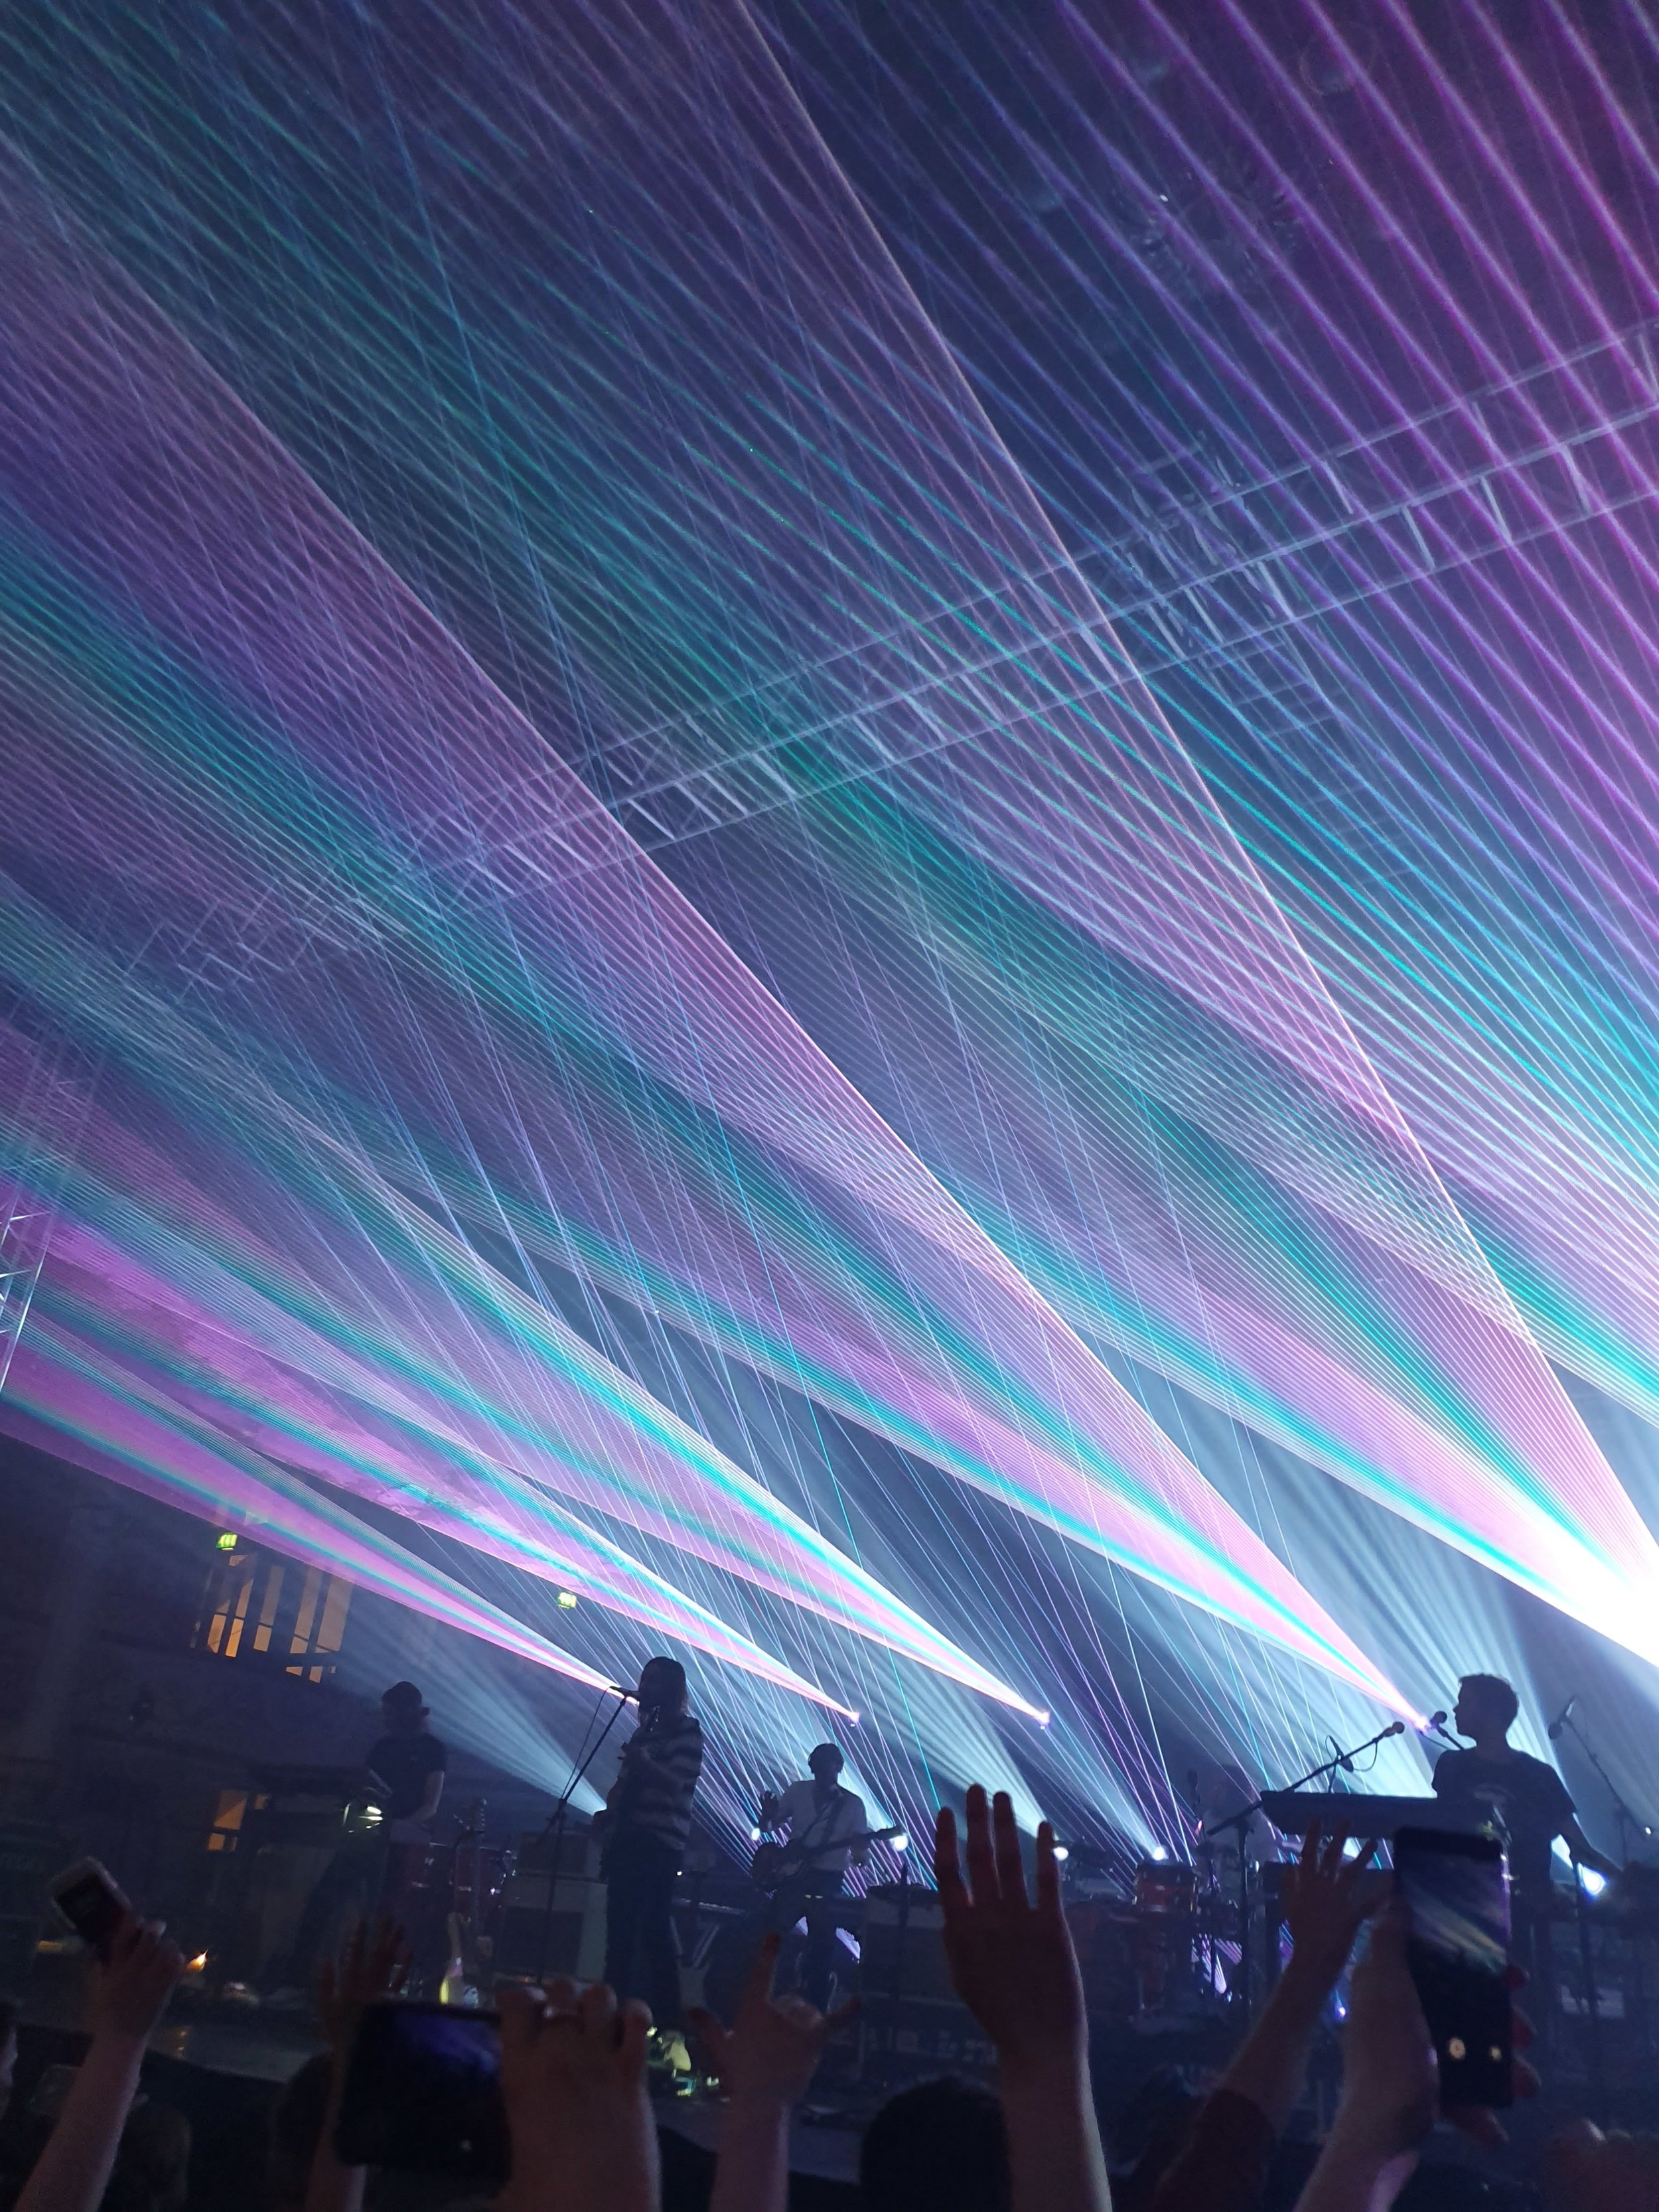 Tame ImpalaEmpress Ballroom[24/06/19] - Tame Impala brought euphoria to Blackpool with a mind-melting, perfect performance that will go down in live history for the group.